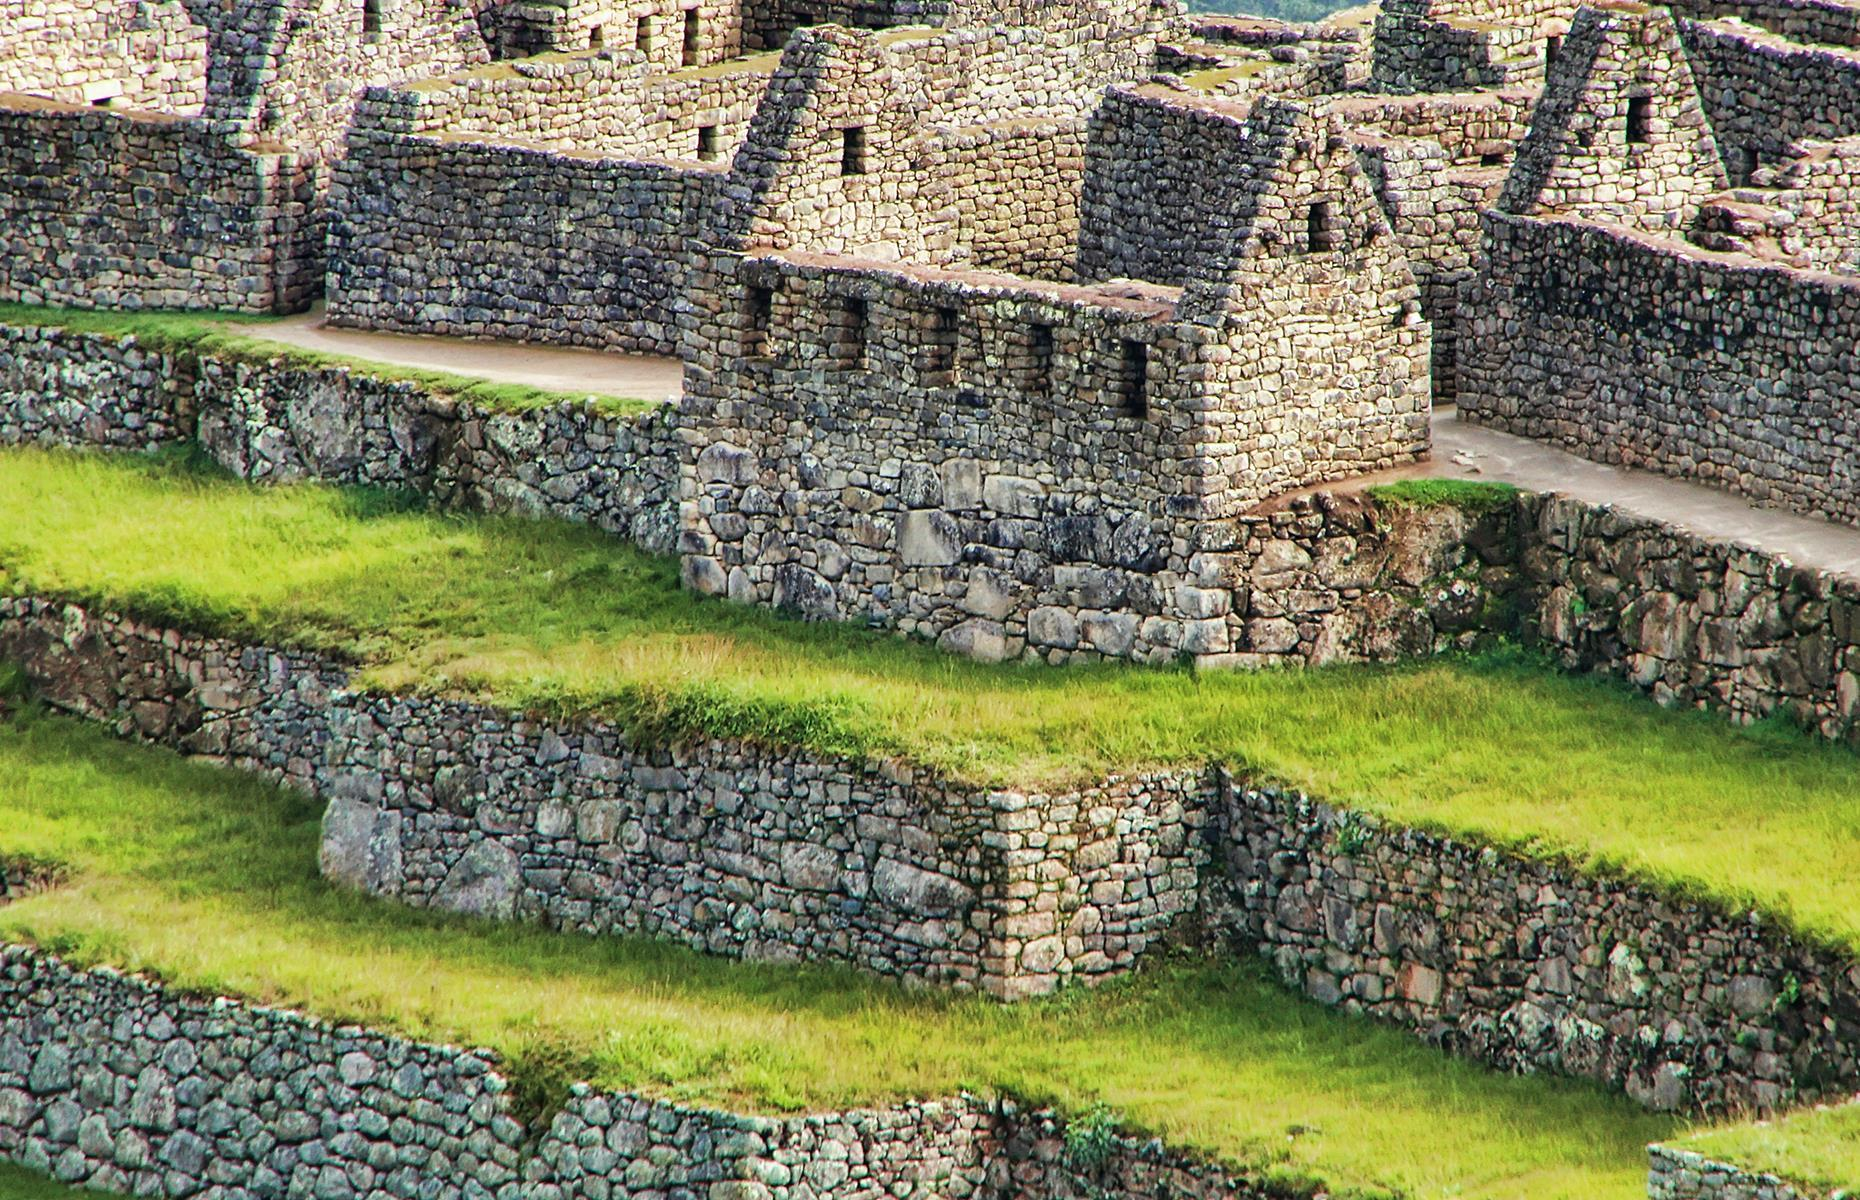 Slide 28 of 53: Located high in the mountains of Peru, this ancient city was an Inca emperor's estate. It was recognized as one of the new seven wonders of the world in 2007 too.